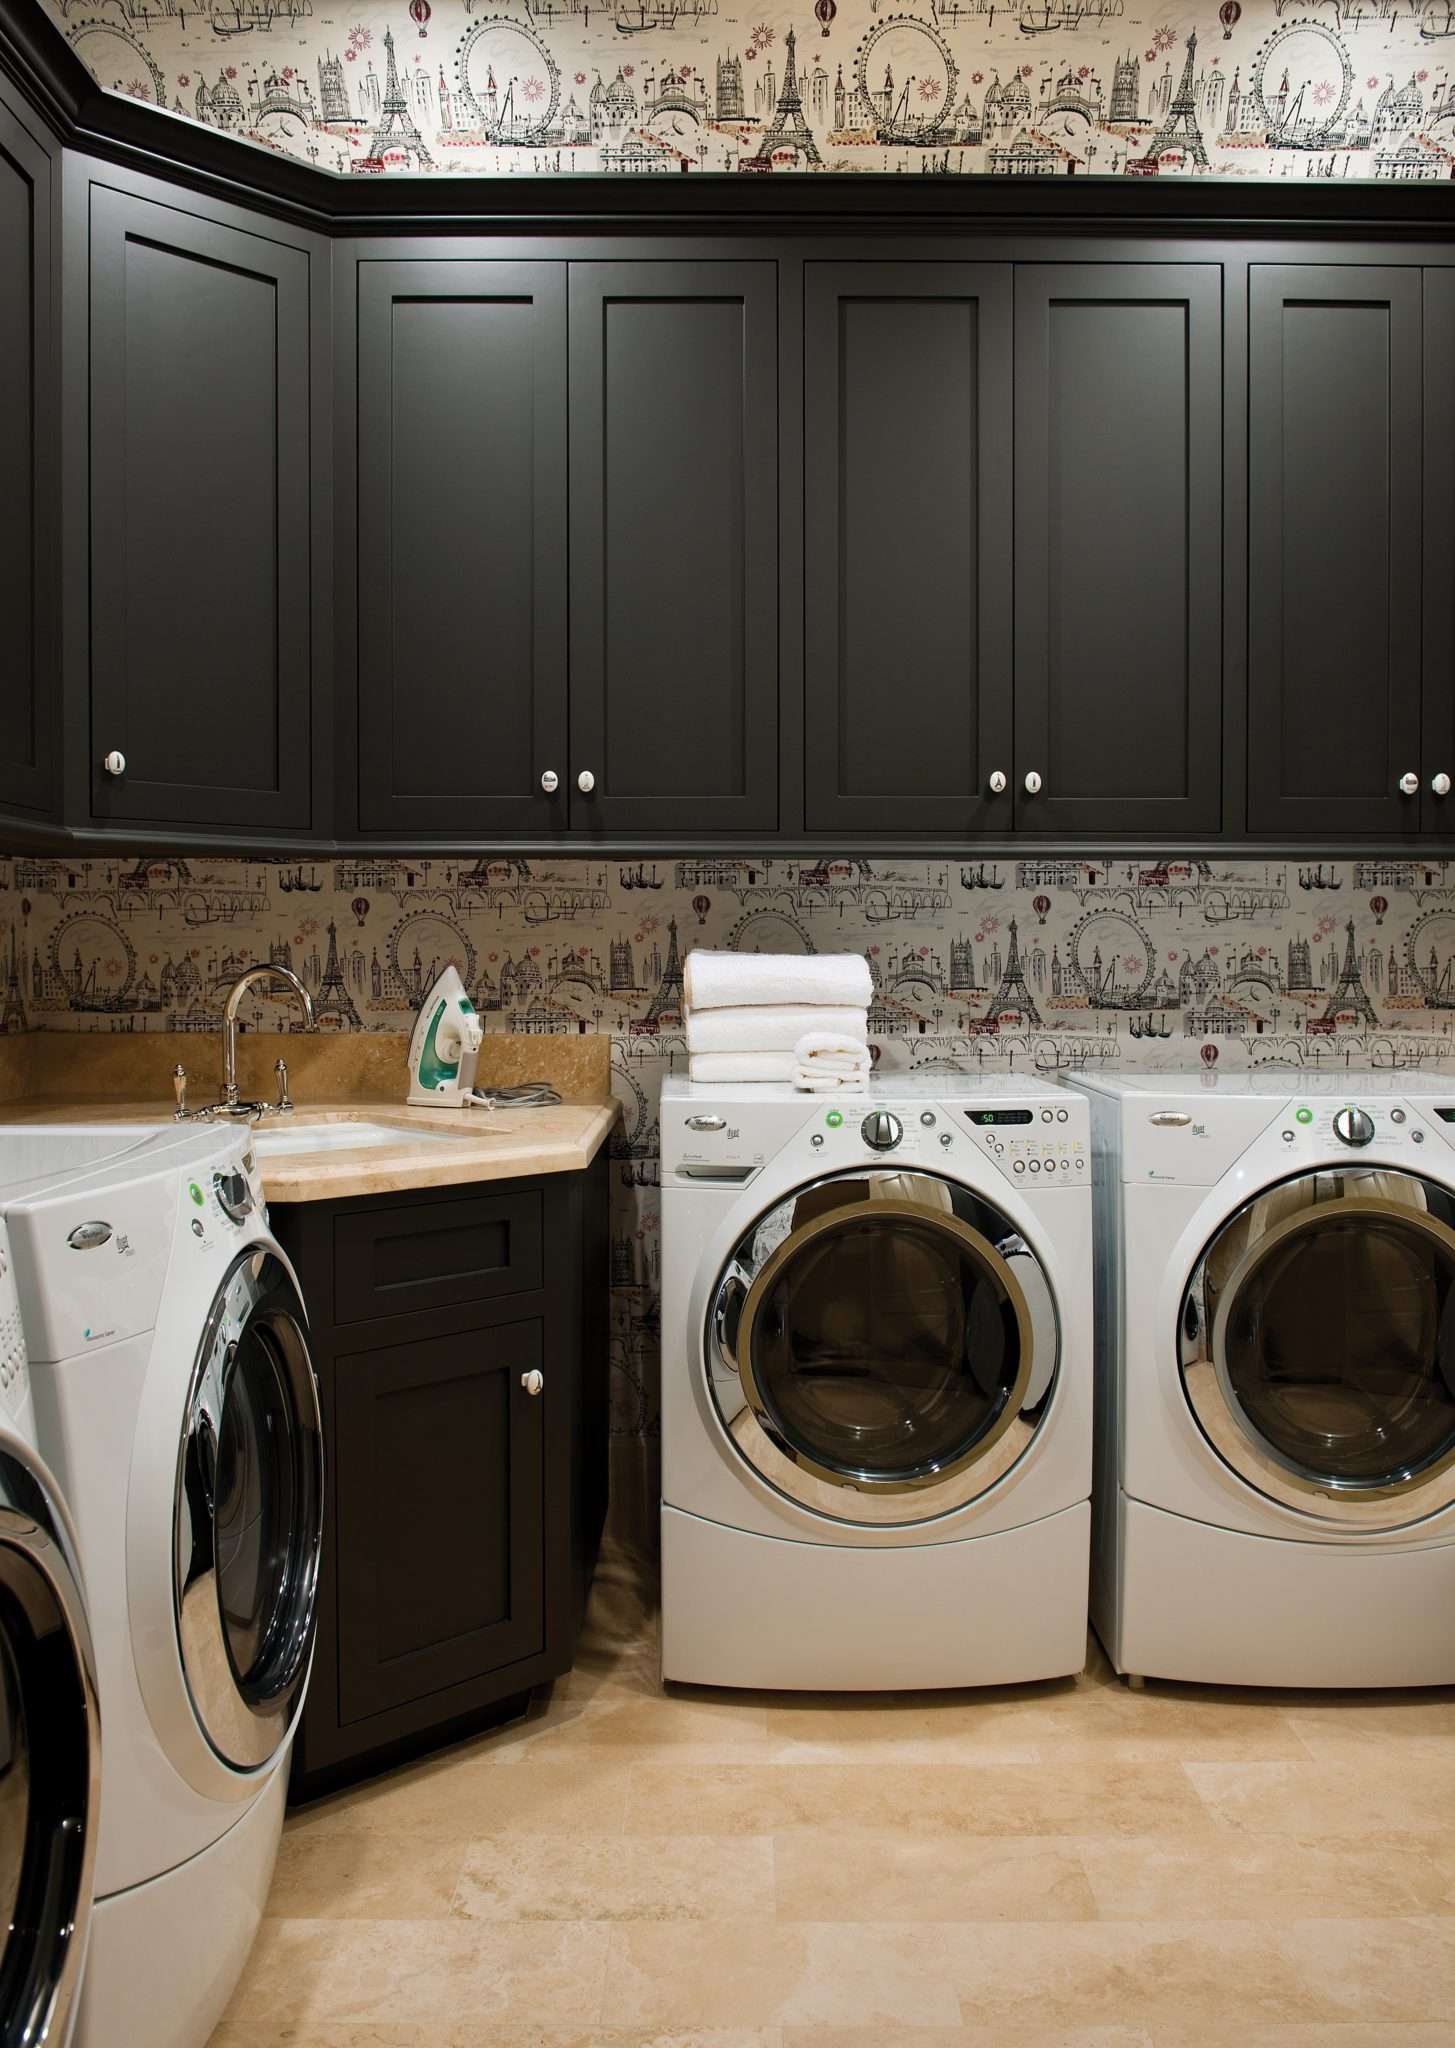 Laundry Room by BettyLou Phillips